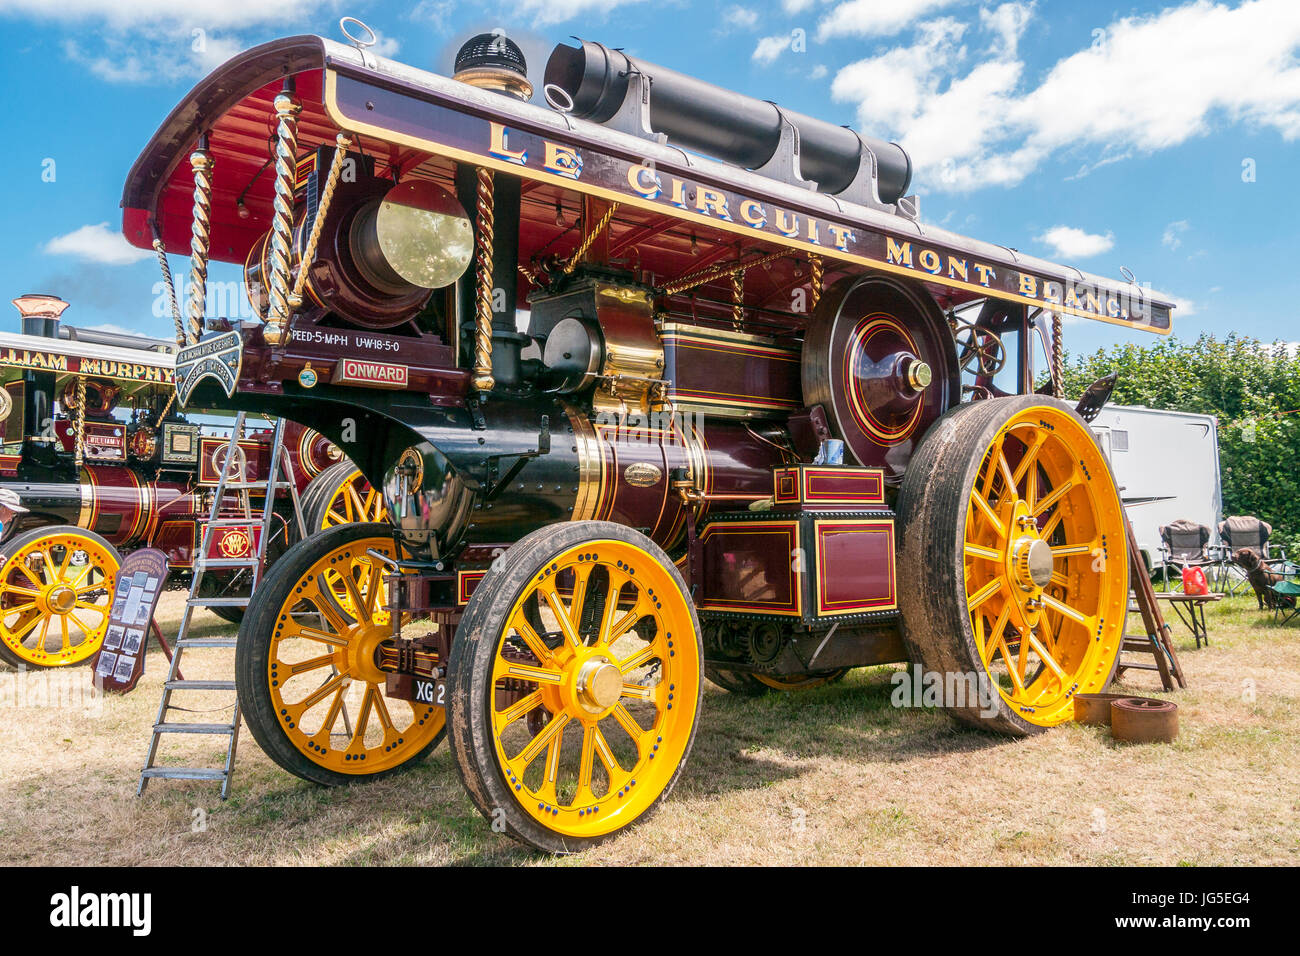 Showman`s Road Locomotive Traction Engines at a Steam rally - Stock Image